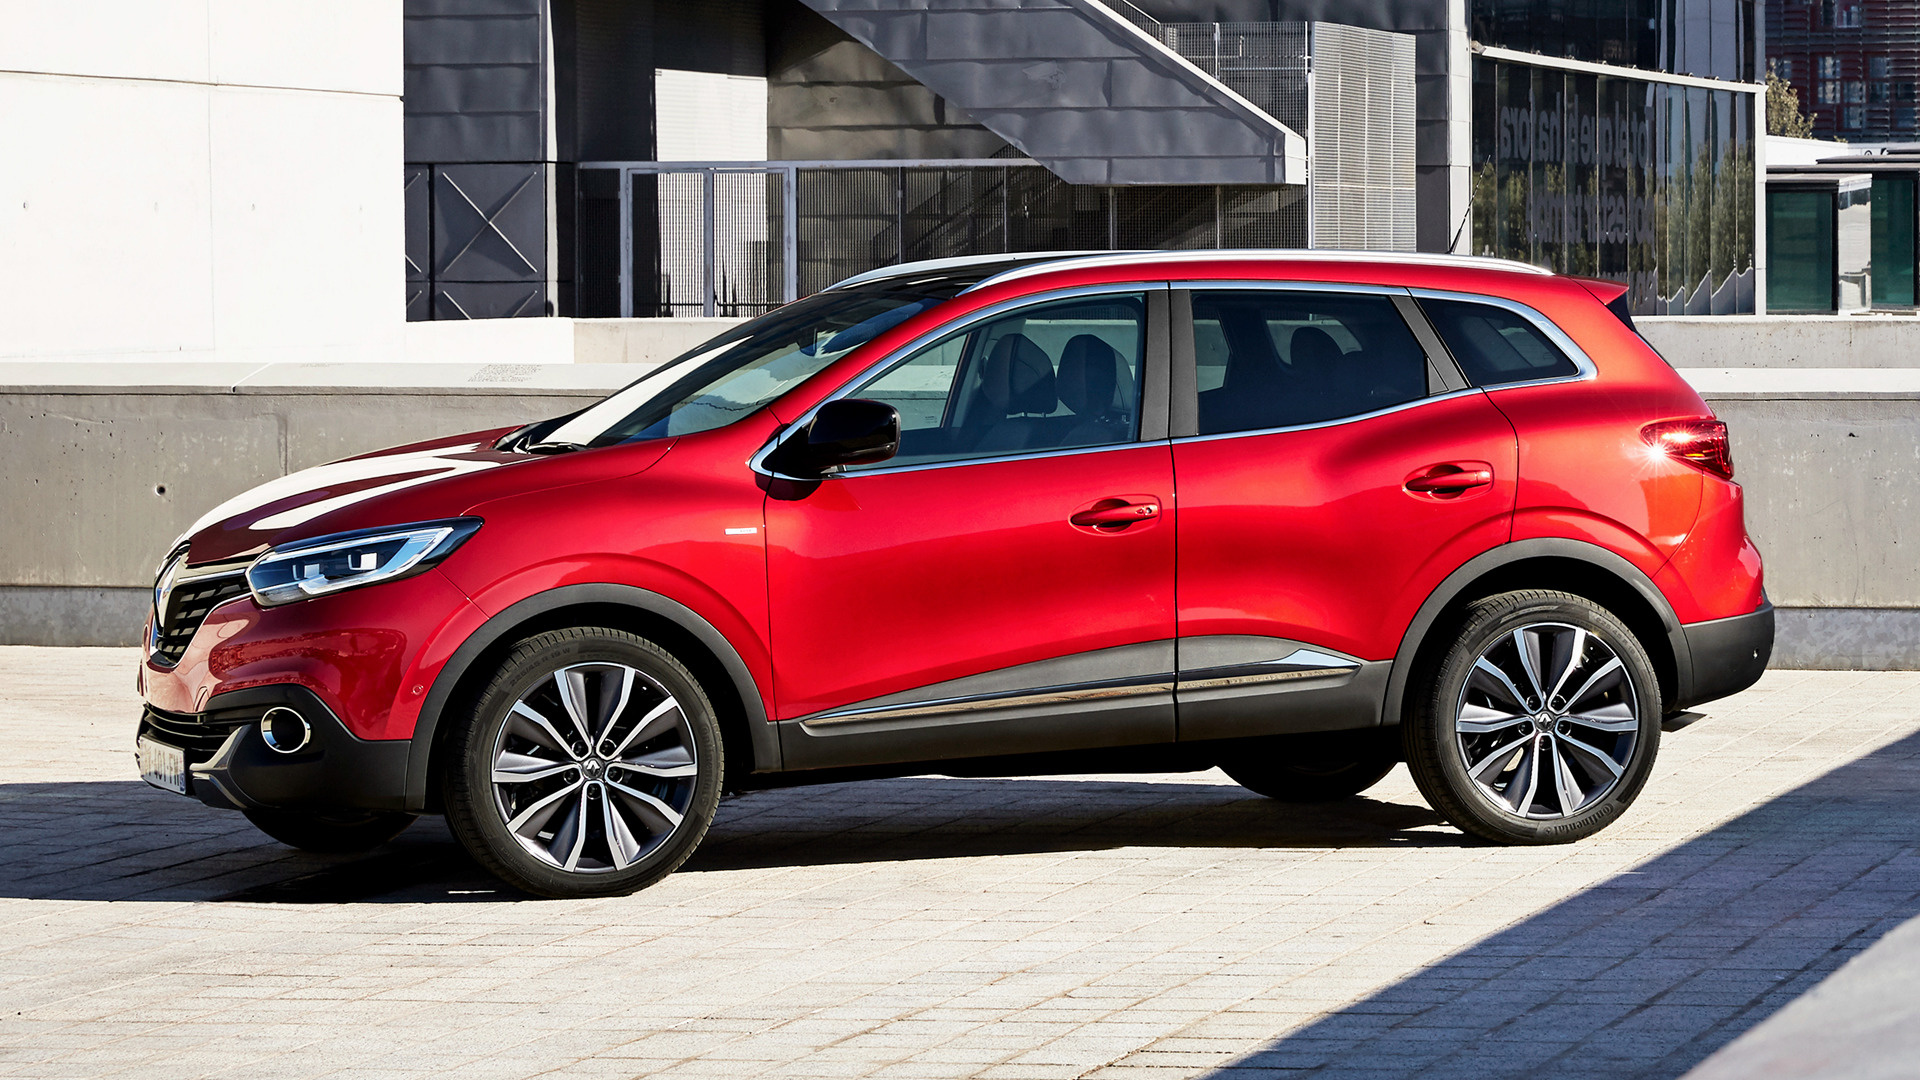 Renault Kadjar Bose 2015 Wallpapers And Hd Images Car